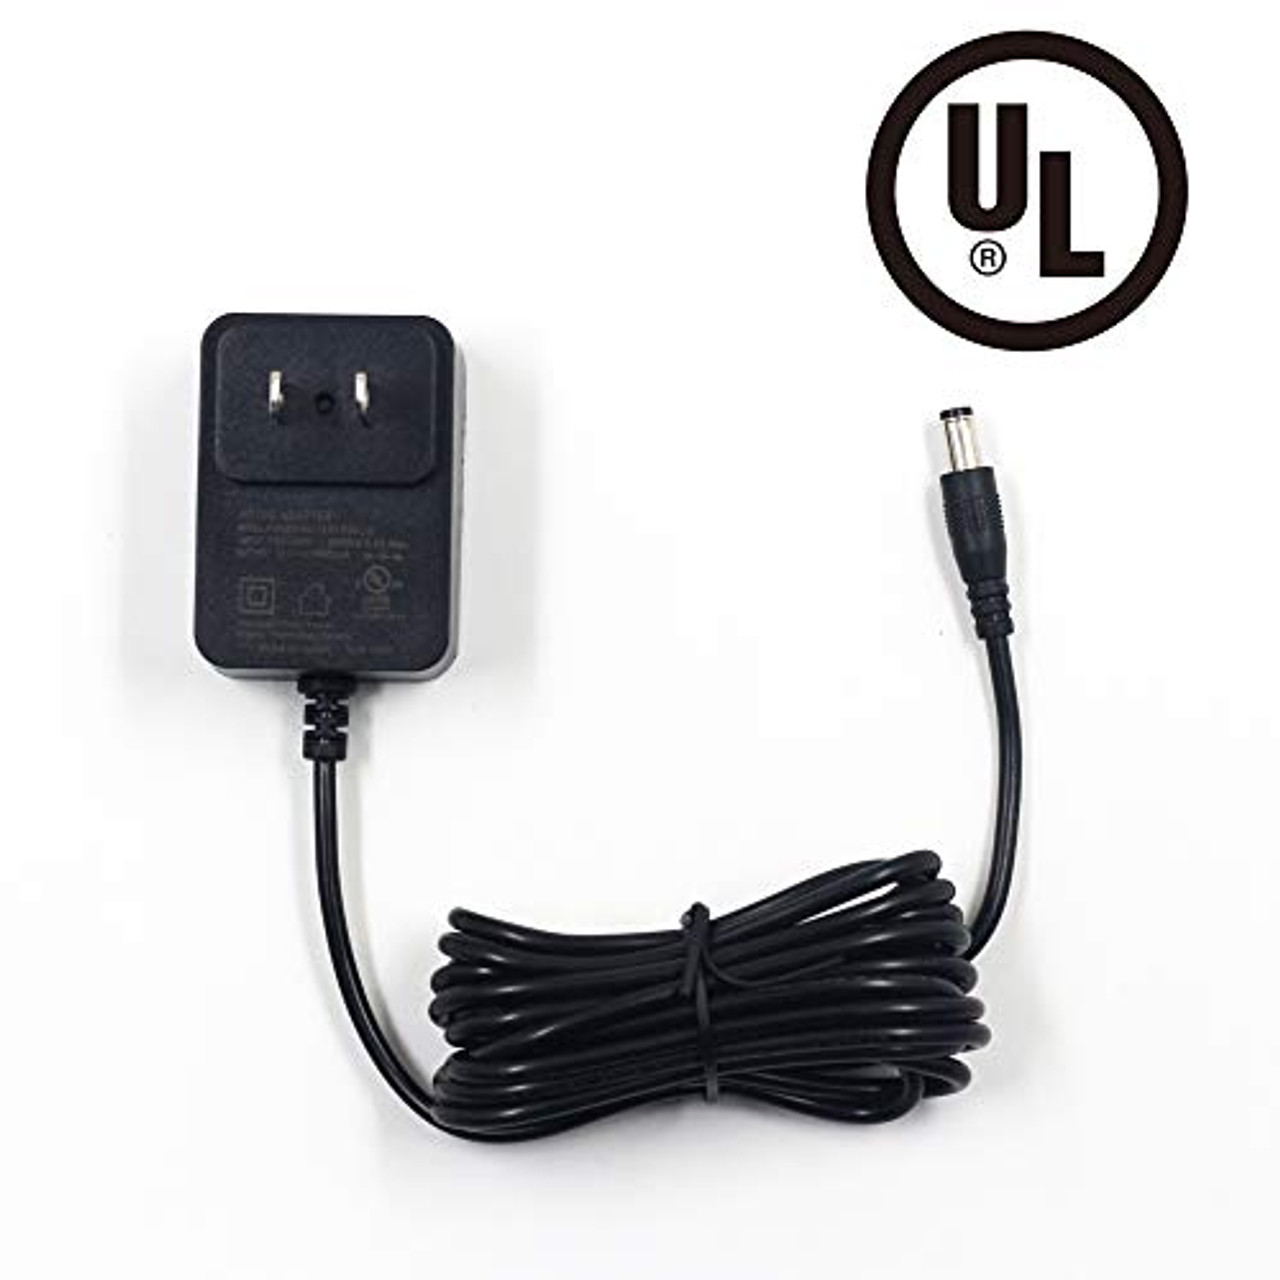 BestCH 12V AC//DC Adapter for CCTV Security Camera 1LC Power Supply Cord Cable Charger Mains PSU